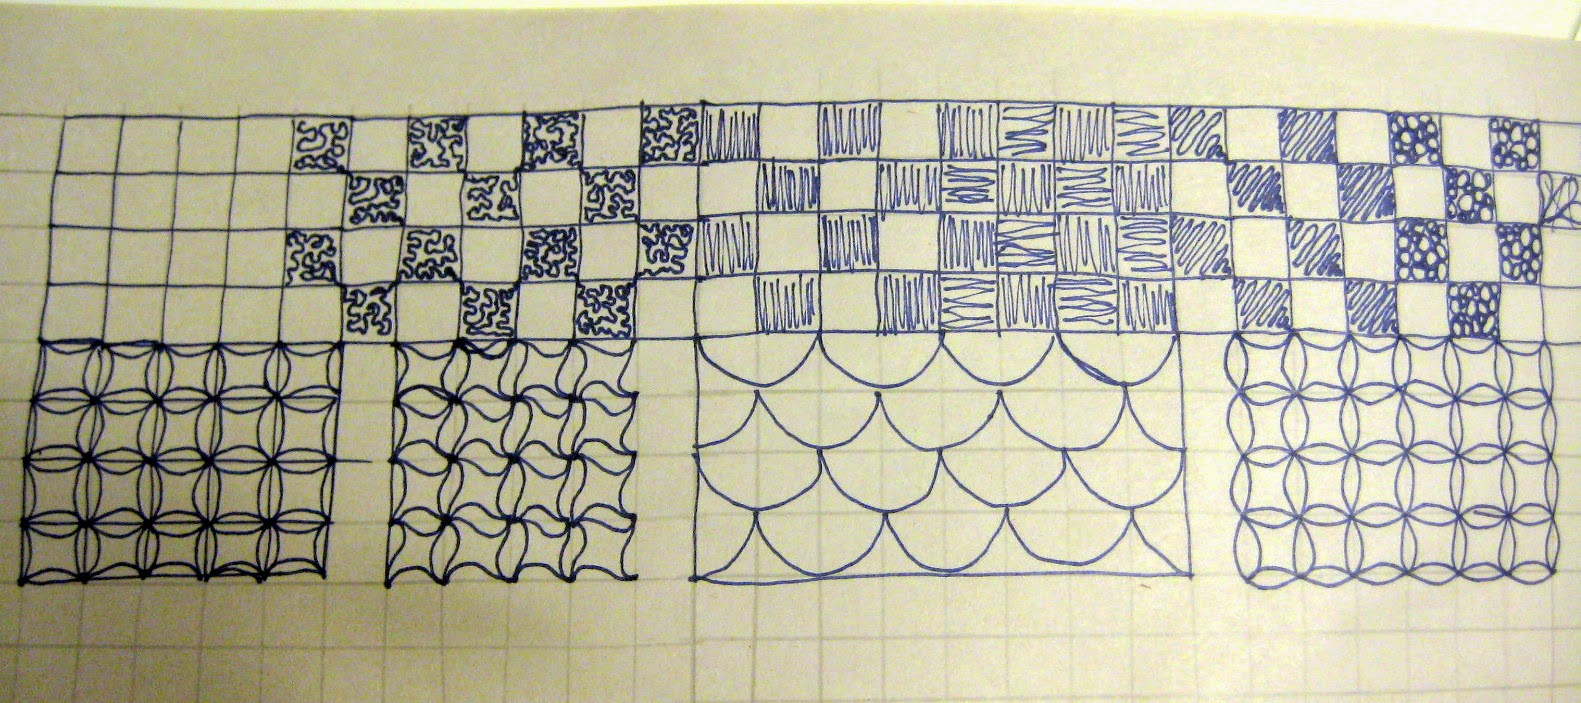 Quilting based on a grid